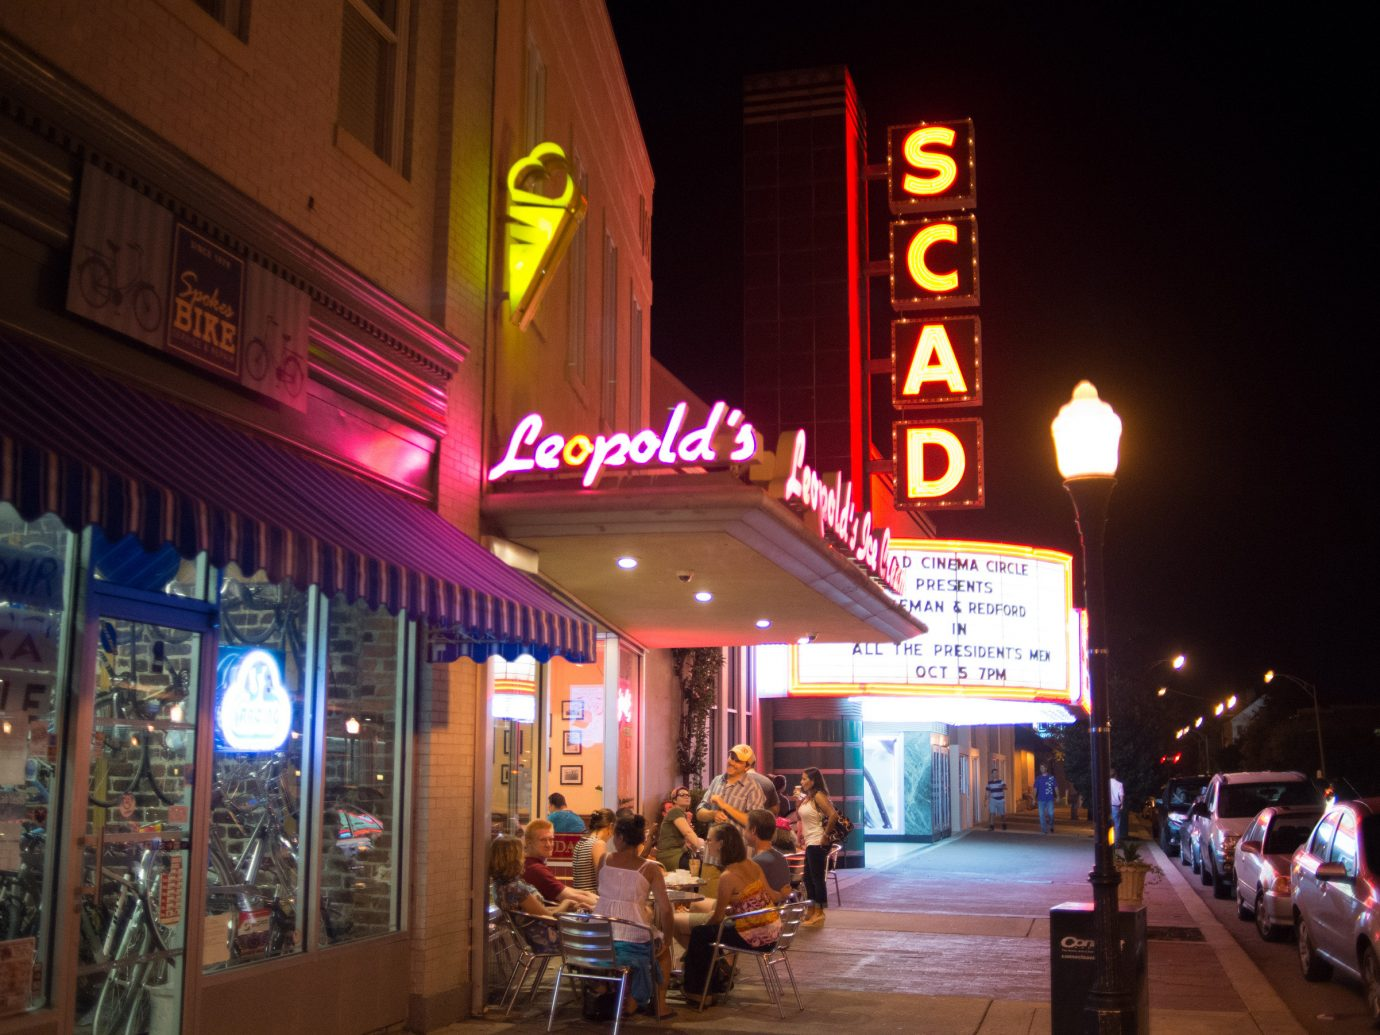 Leopold's Ice Cream in Savannah, GA